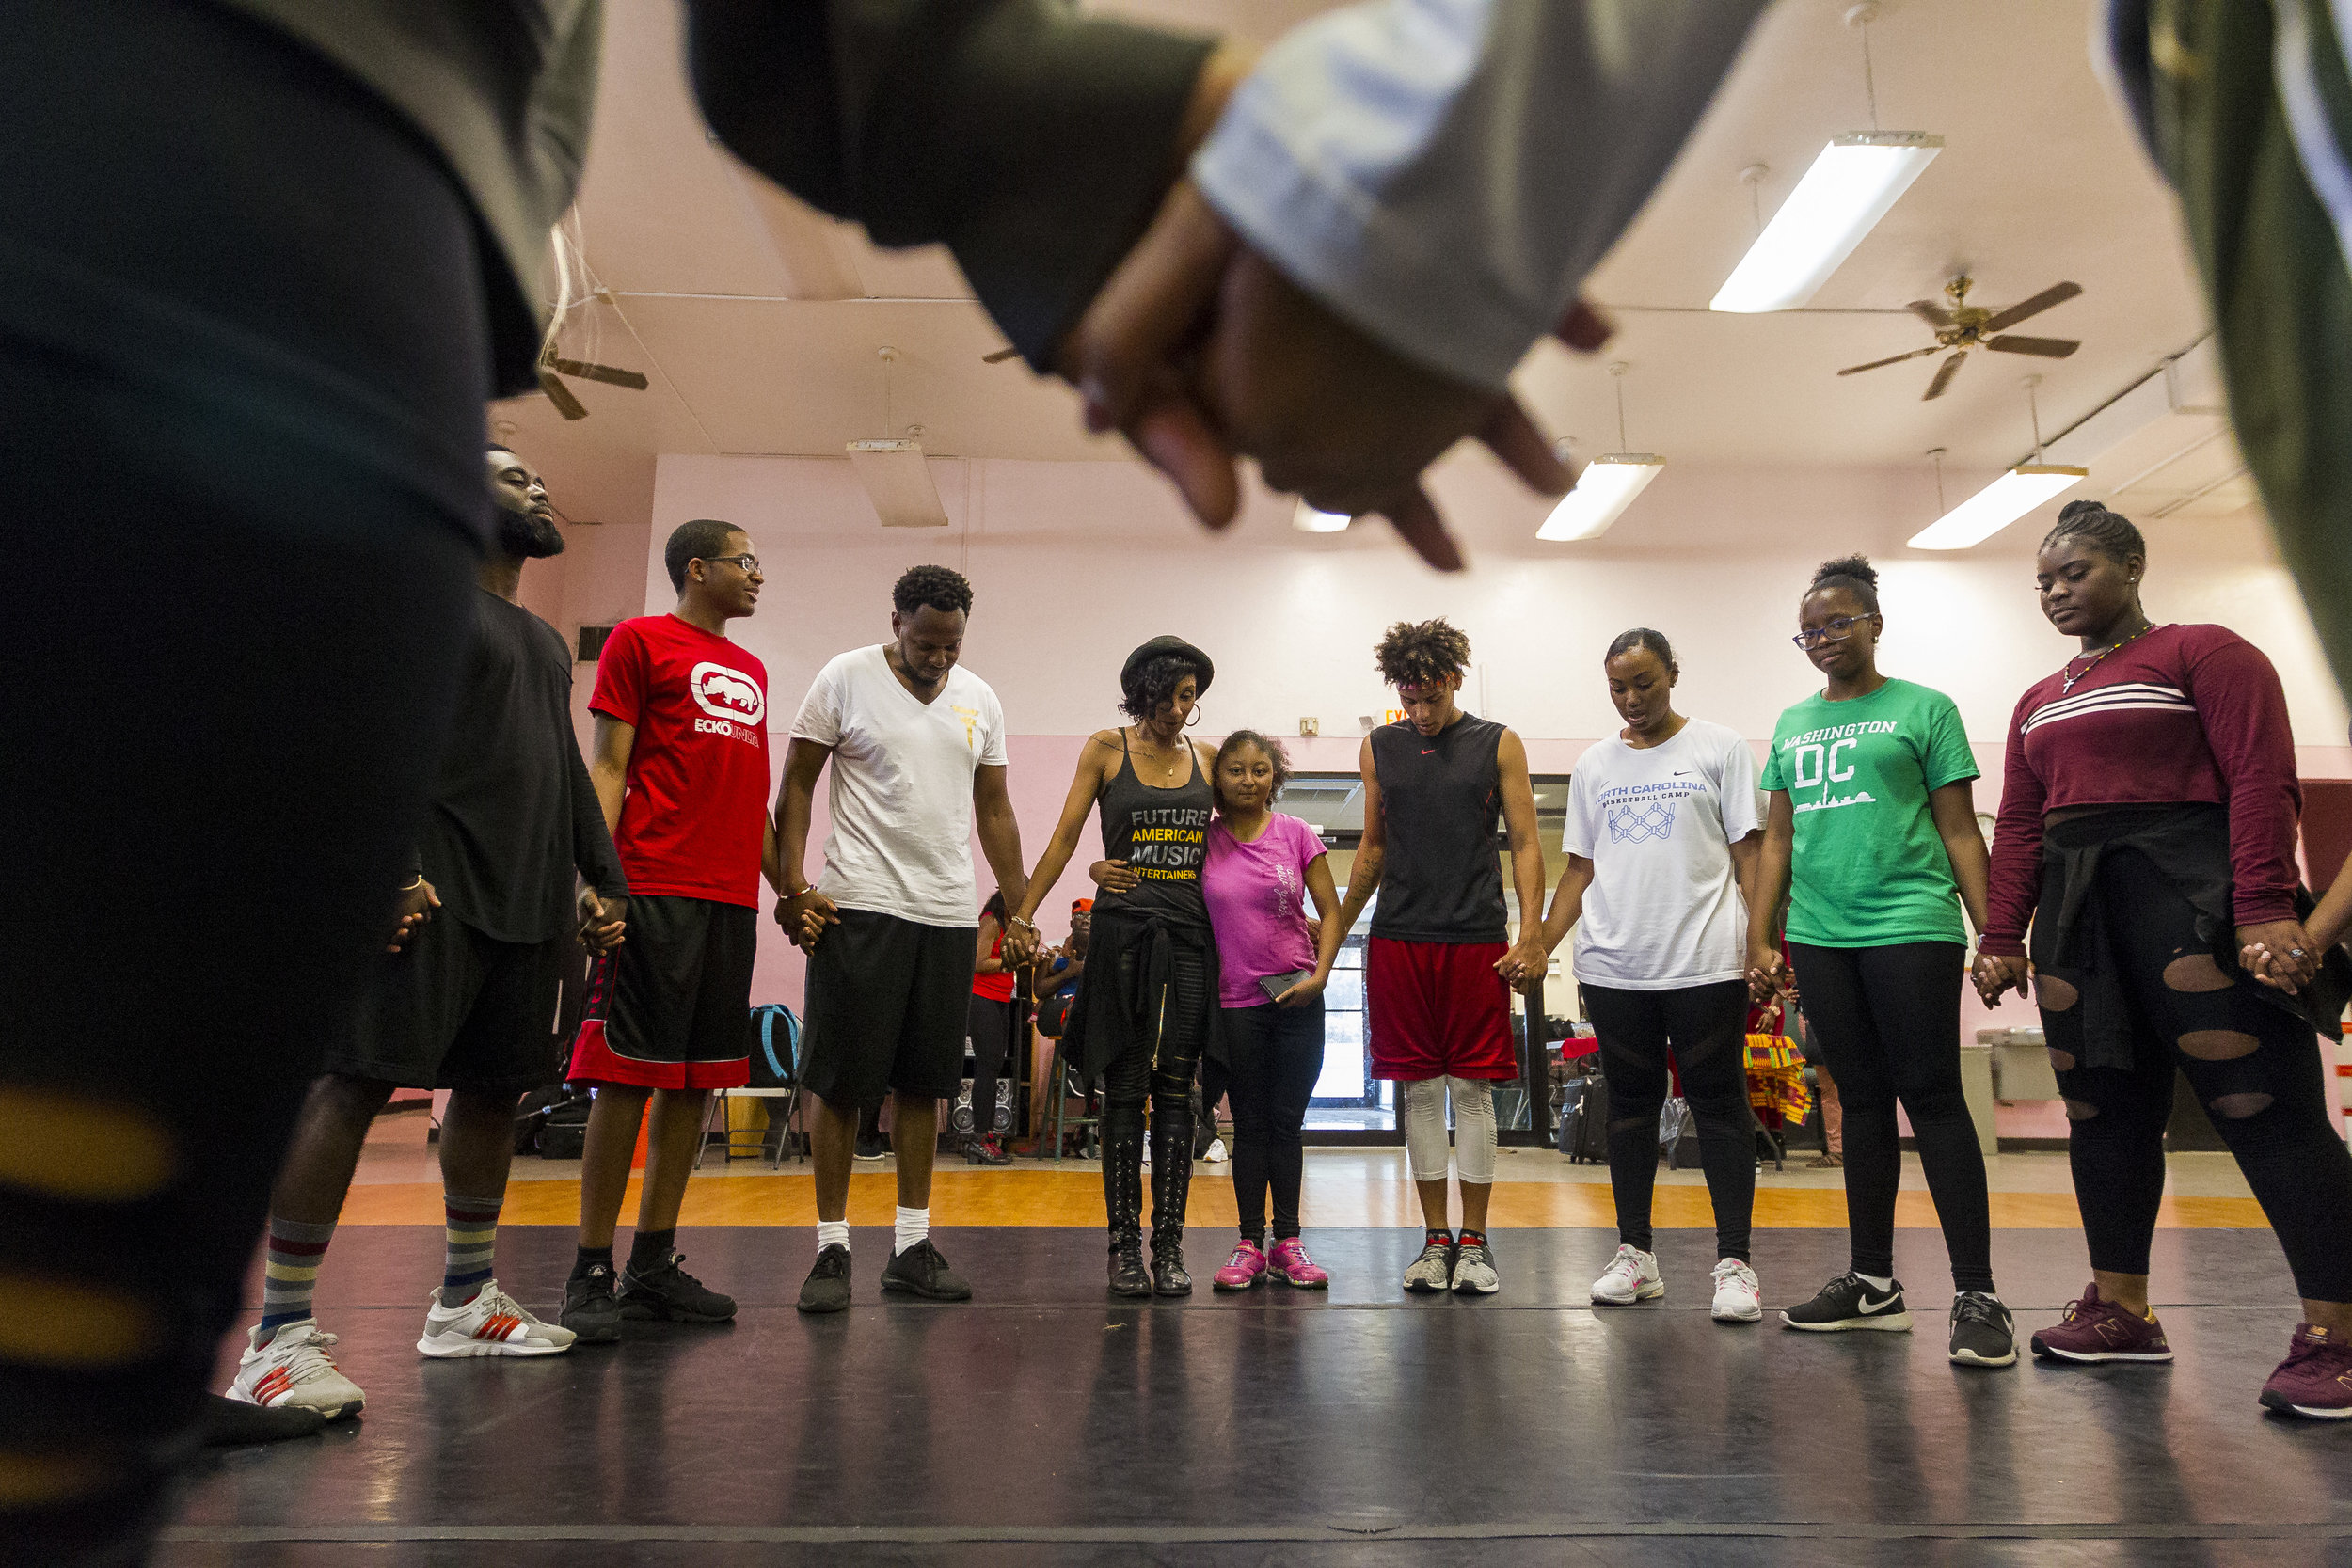 Entourage finalists talk in a group after their rehearsal session at the African Heritage Cultural Arts Center in Liberty City on Saturday, April 14, 2018. Entourage's chosen artists are given a variety of classes that help transform and develop their talent.